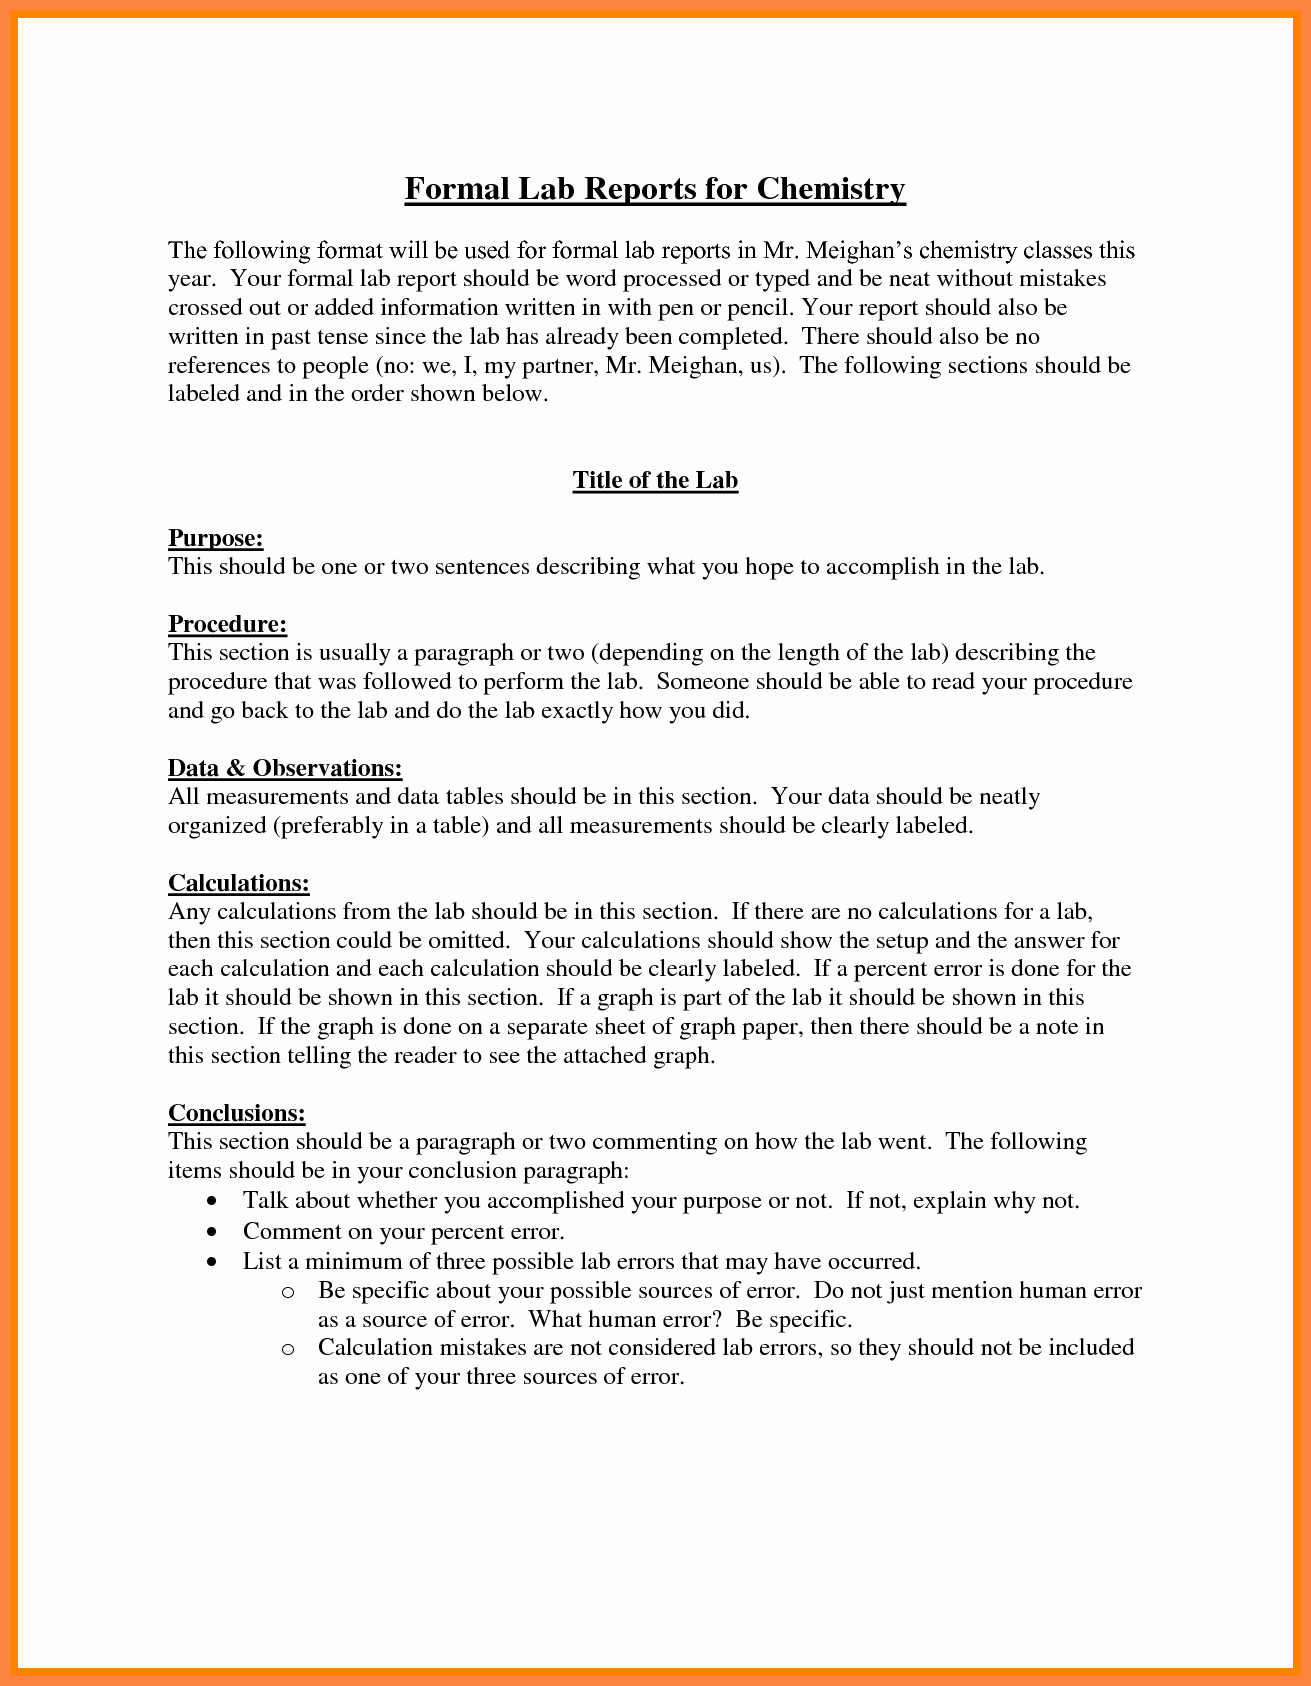 Formal Lab Report Template Awesome 8 formal Lab Report Example